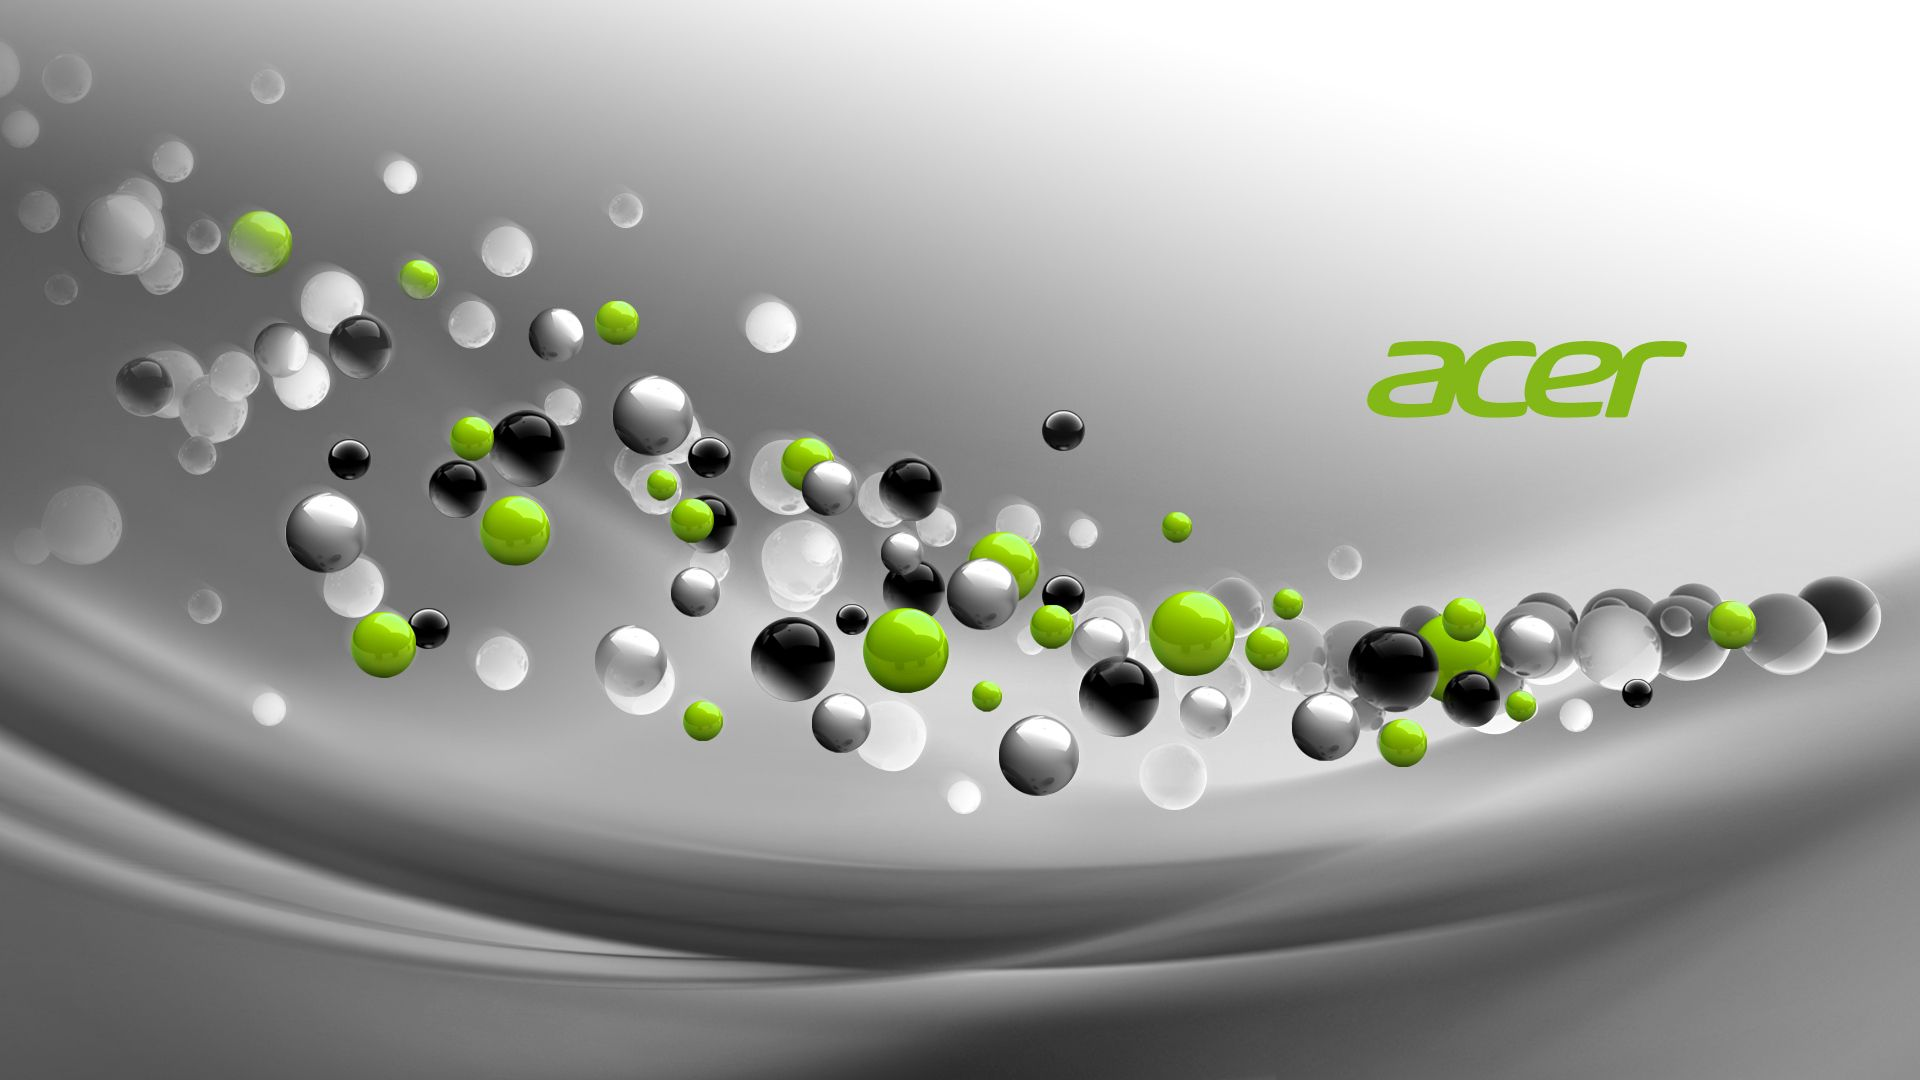 Acer Aspire Theme Wallpaper Pc Hd Wallpapers For Laptop Computer Wallpaper